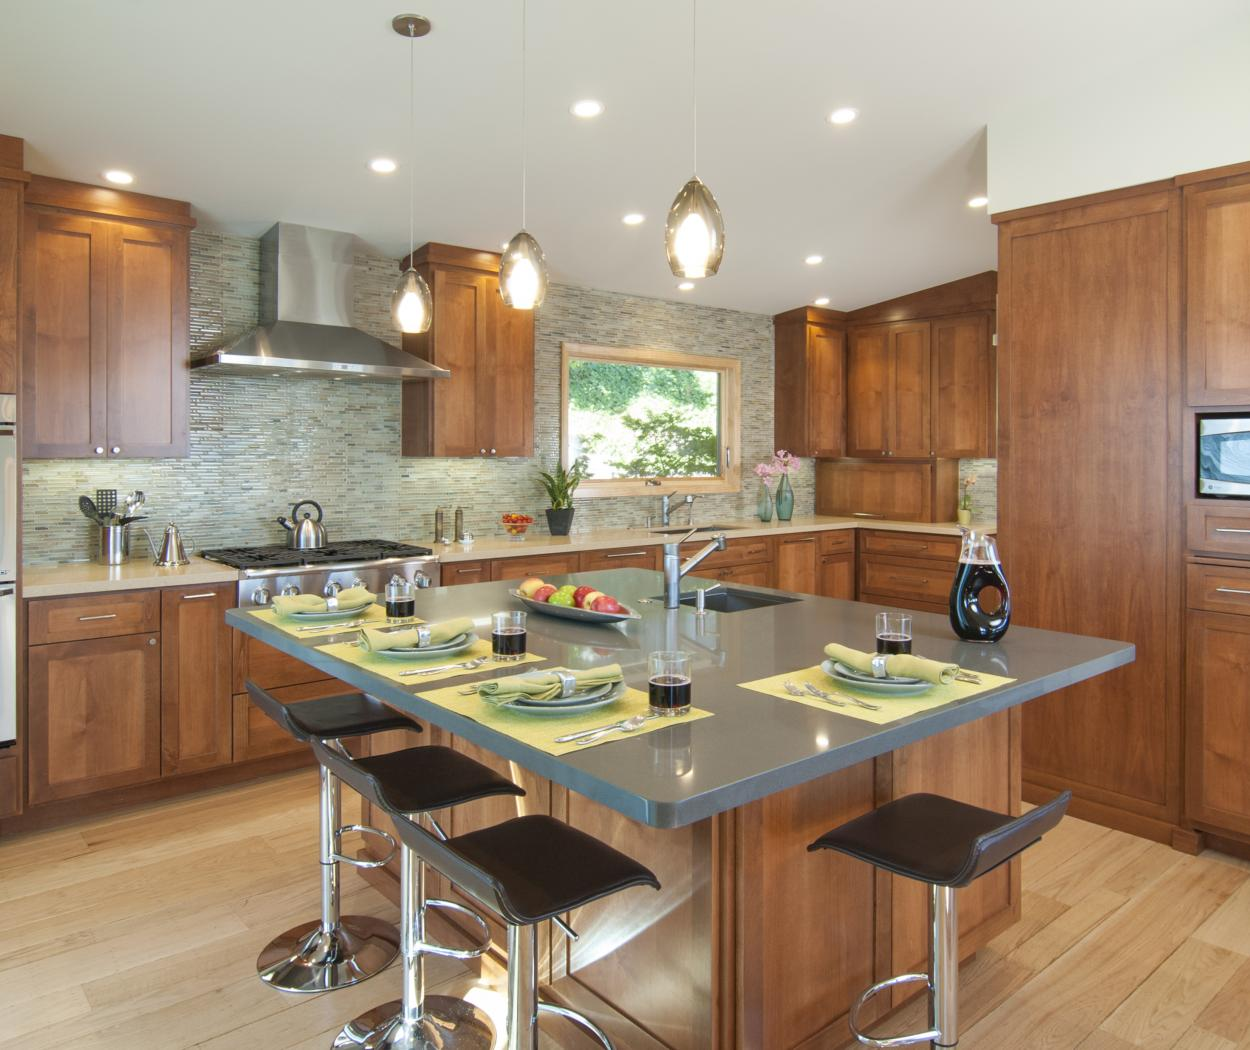 Transitional, Shaker Style Kitchen Cabinets Built in Alder with a Beautiful Matching Island and Stainless Steel Appliances